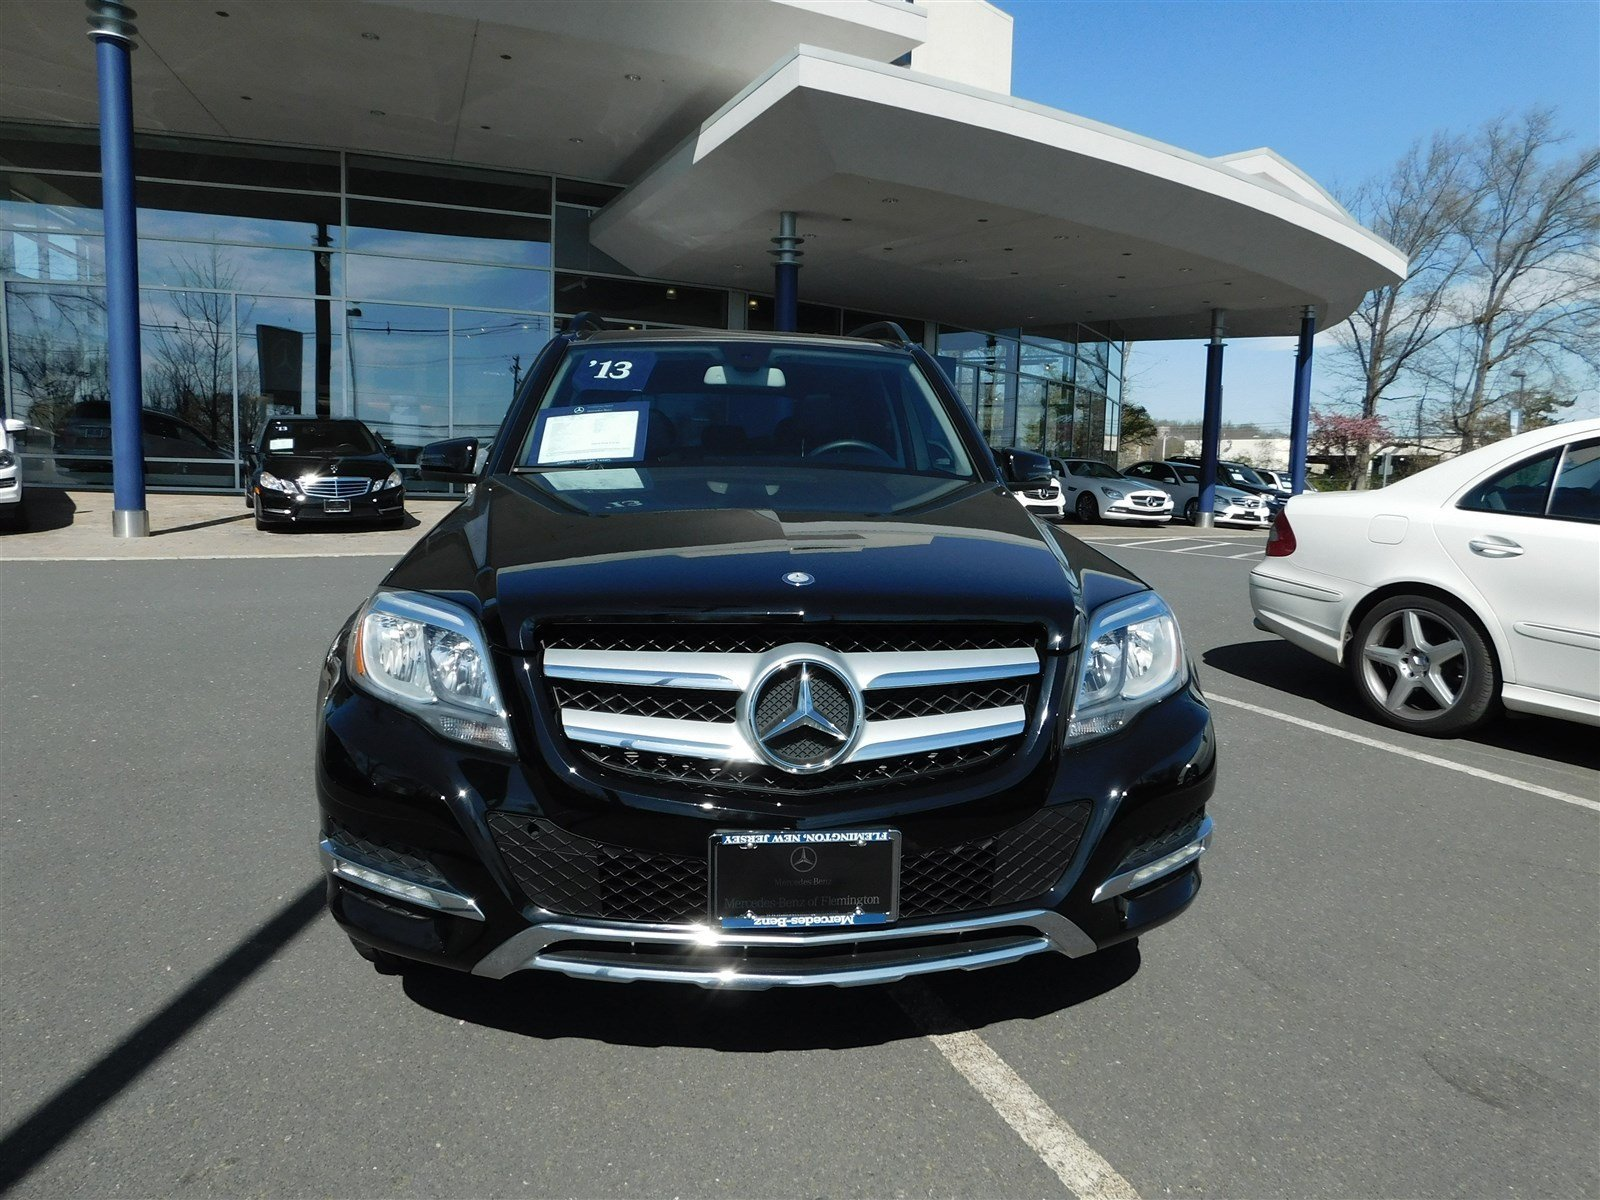 certified pre owned 2013 mercedes benz glk glk 350 4matic - 2013 Mercedes Benz Glk Class